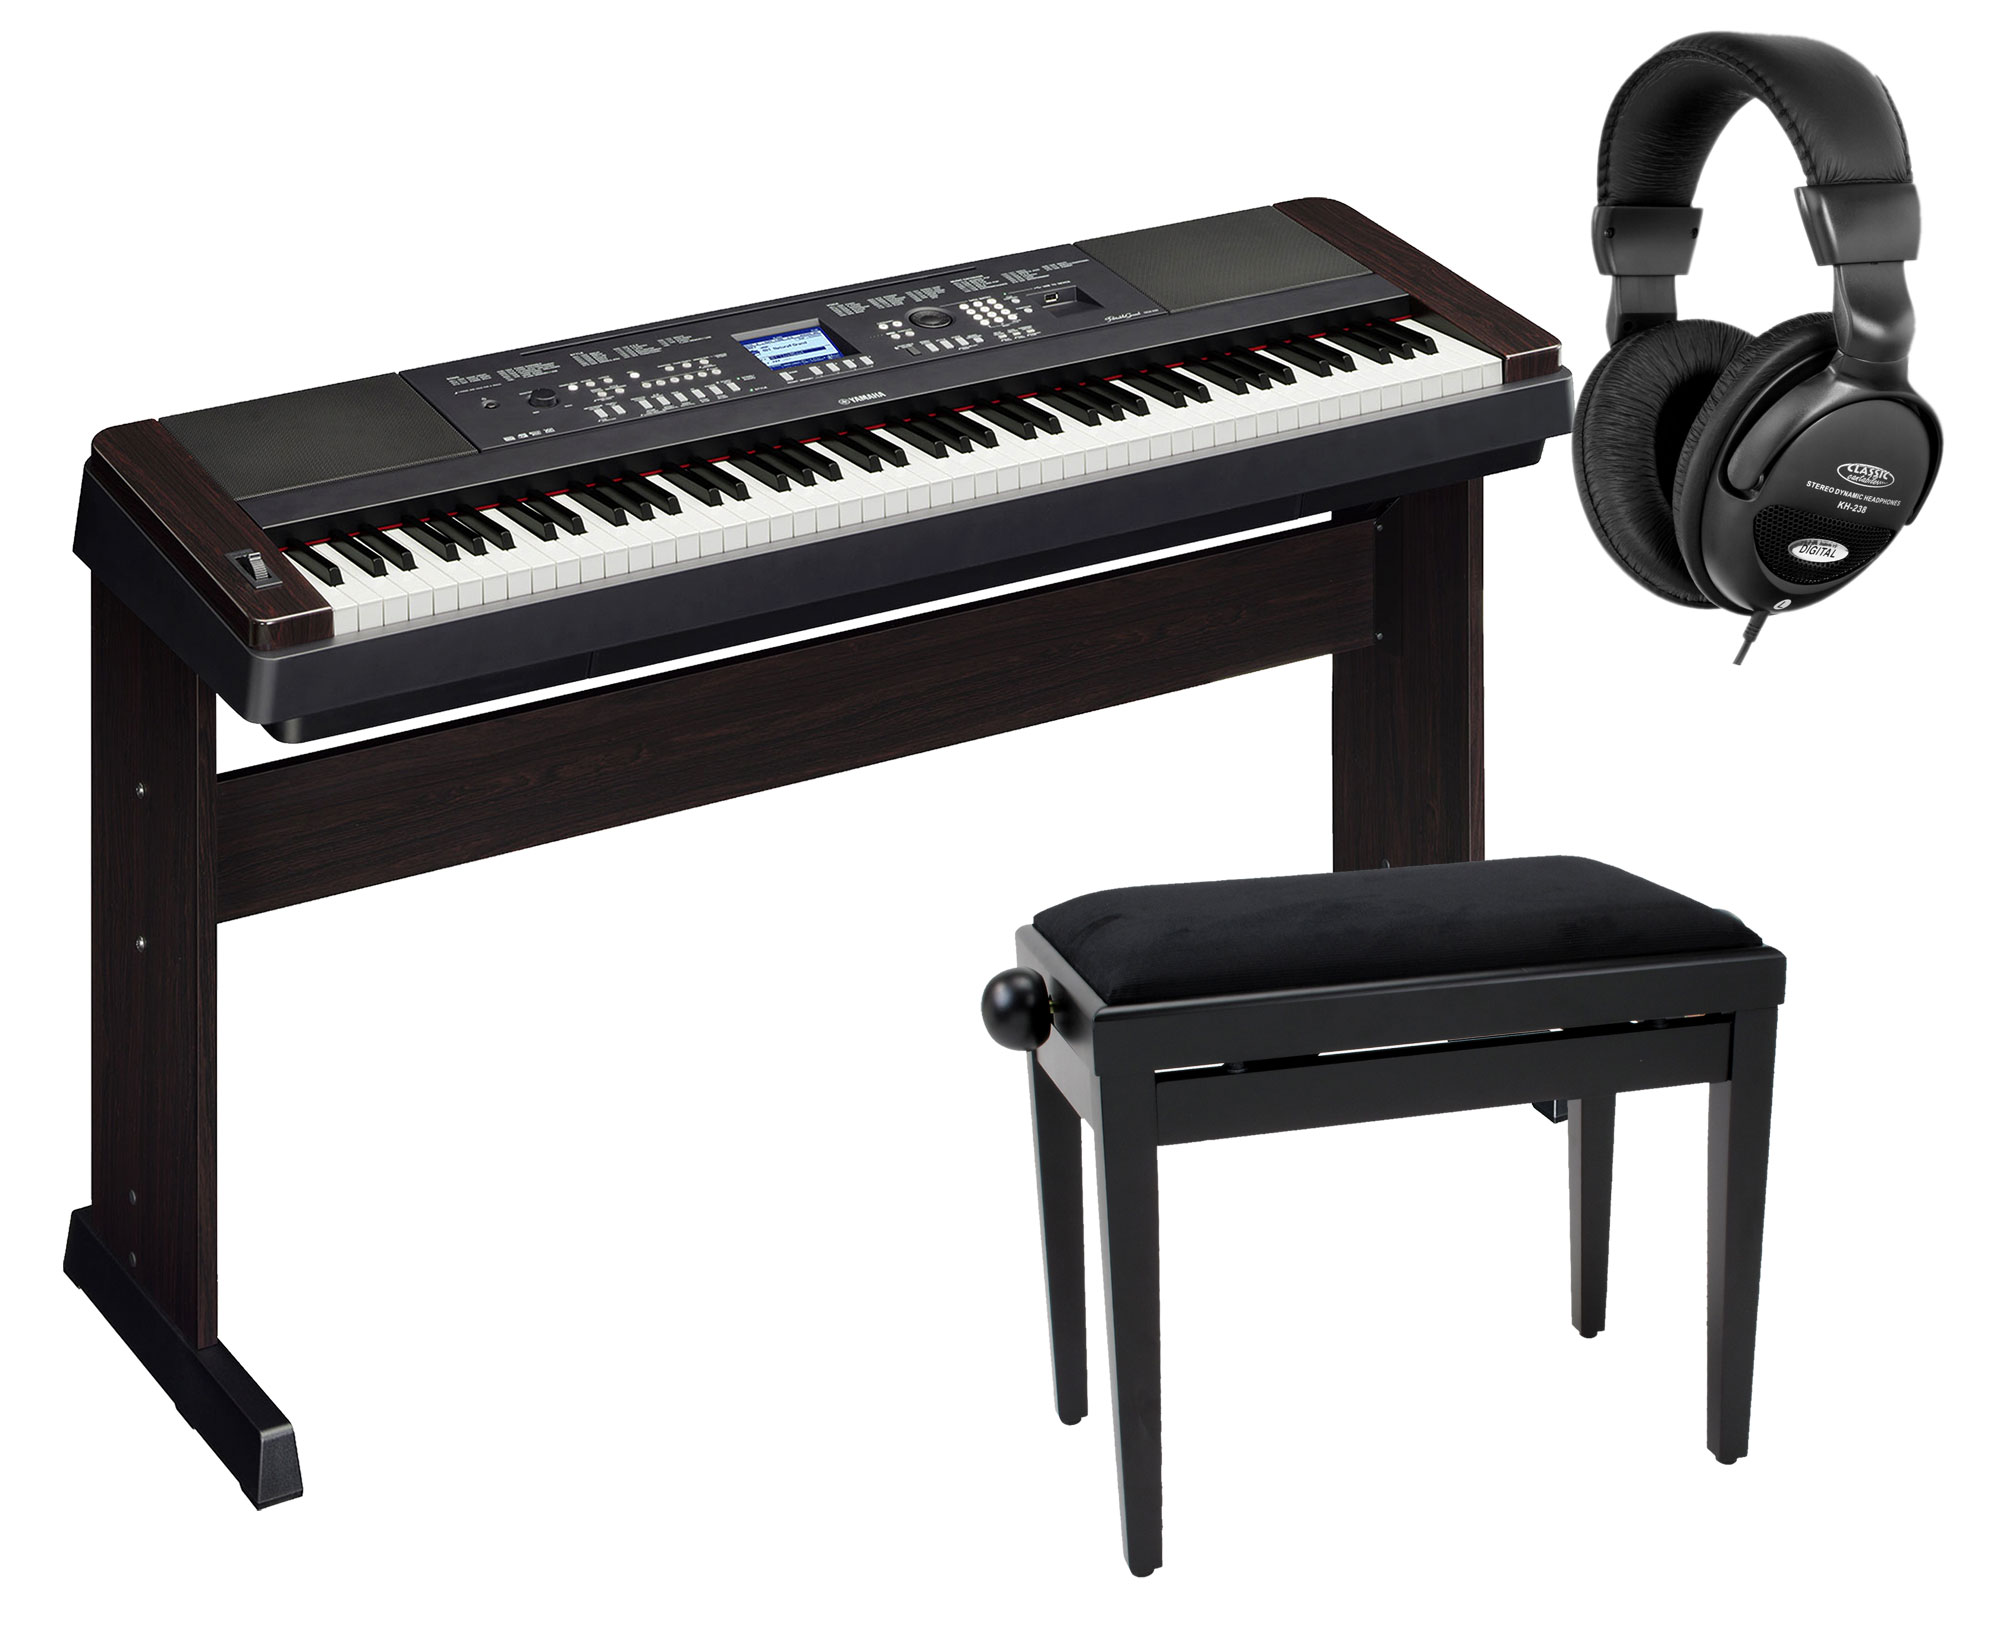 yamaha dgx 650 portable piano schwarz set kirstein music shop. Black Bedroom Furniture Sets. Home Design Ideas